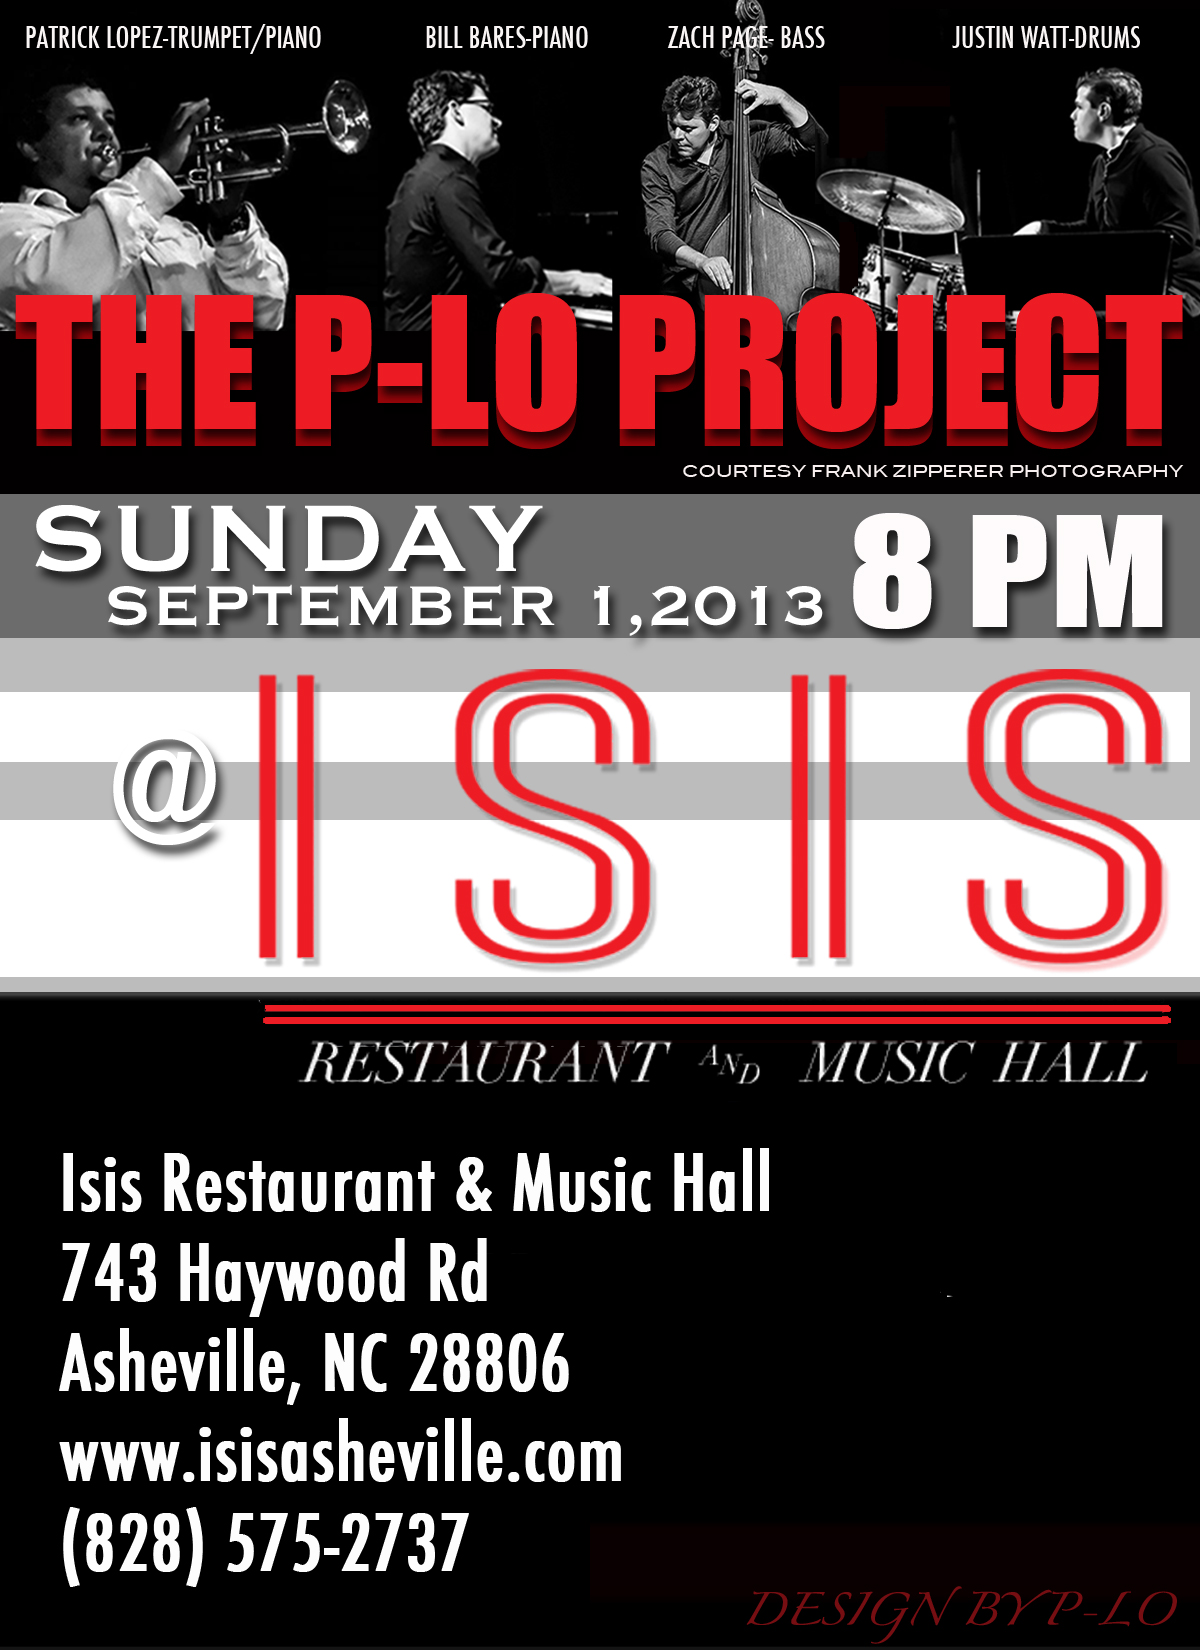 plo-project-sept12013